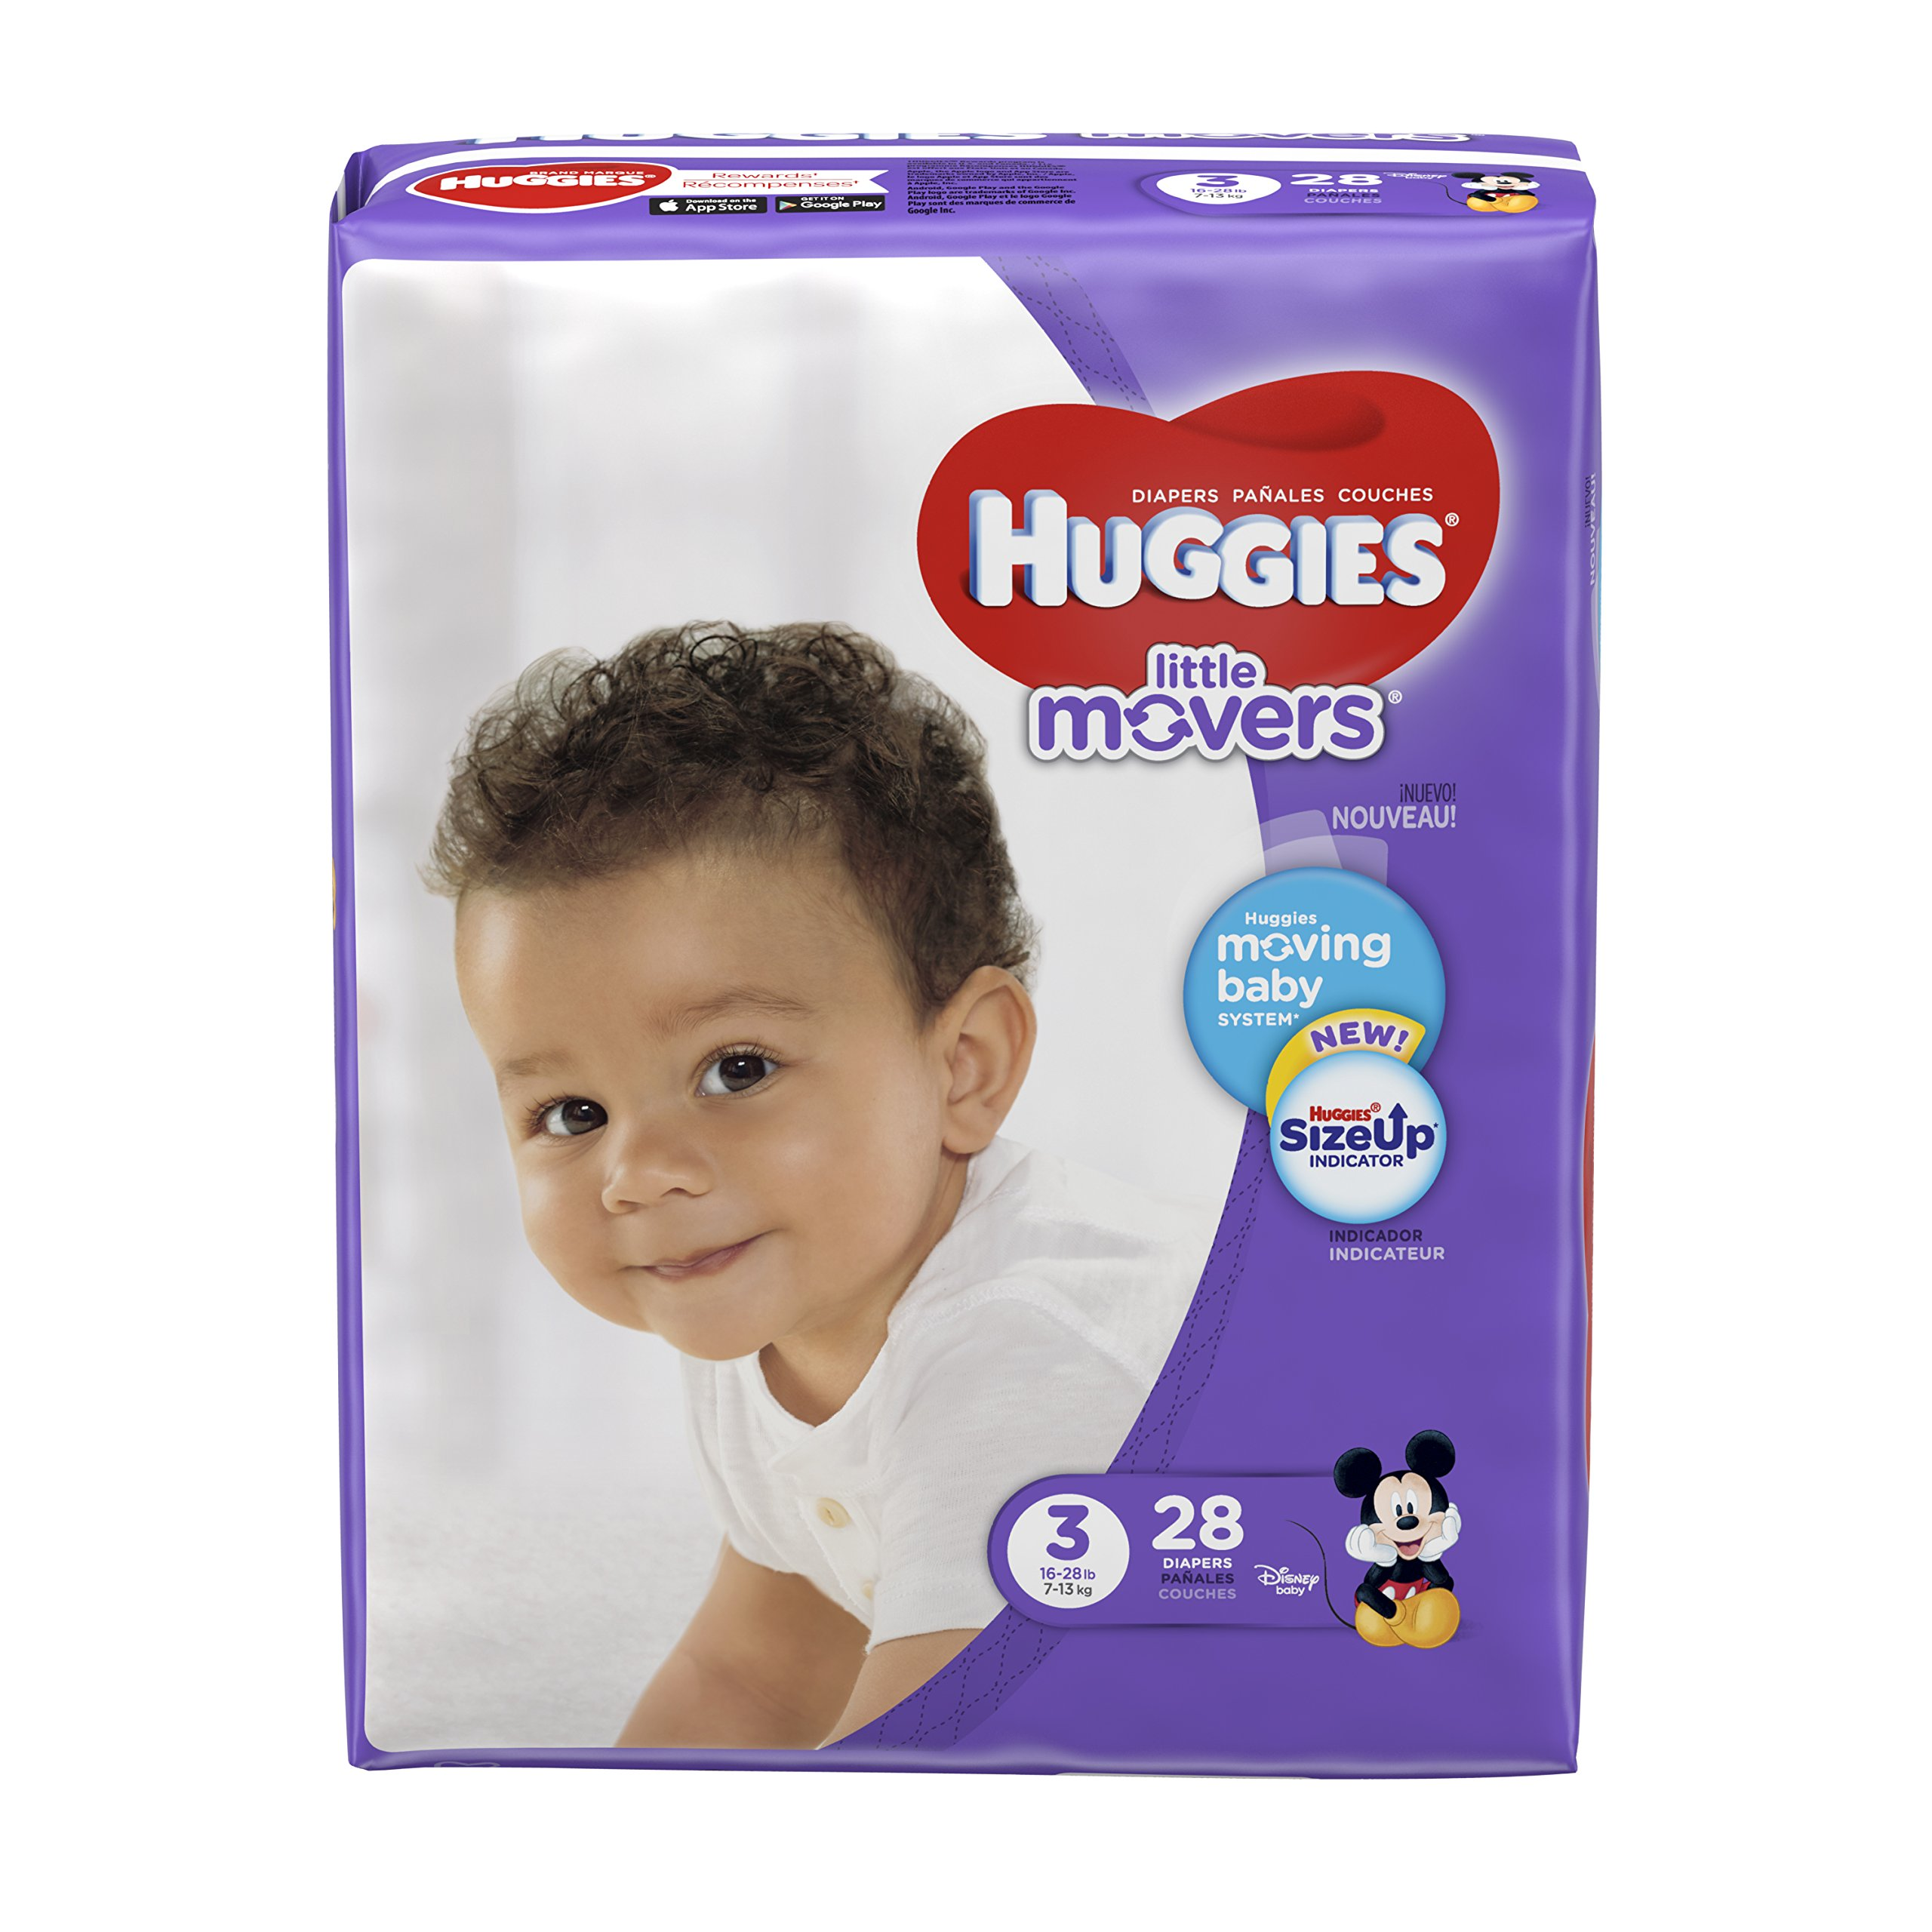 HUGGIES LITTLE MOVERS Diapers, Size 3 (16-28 lb.), 28